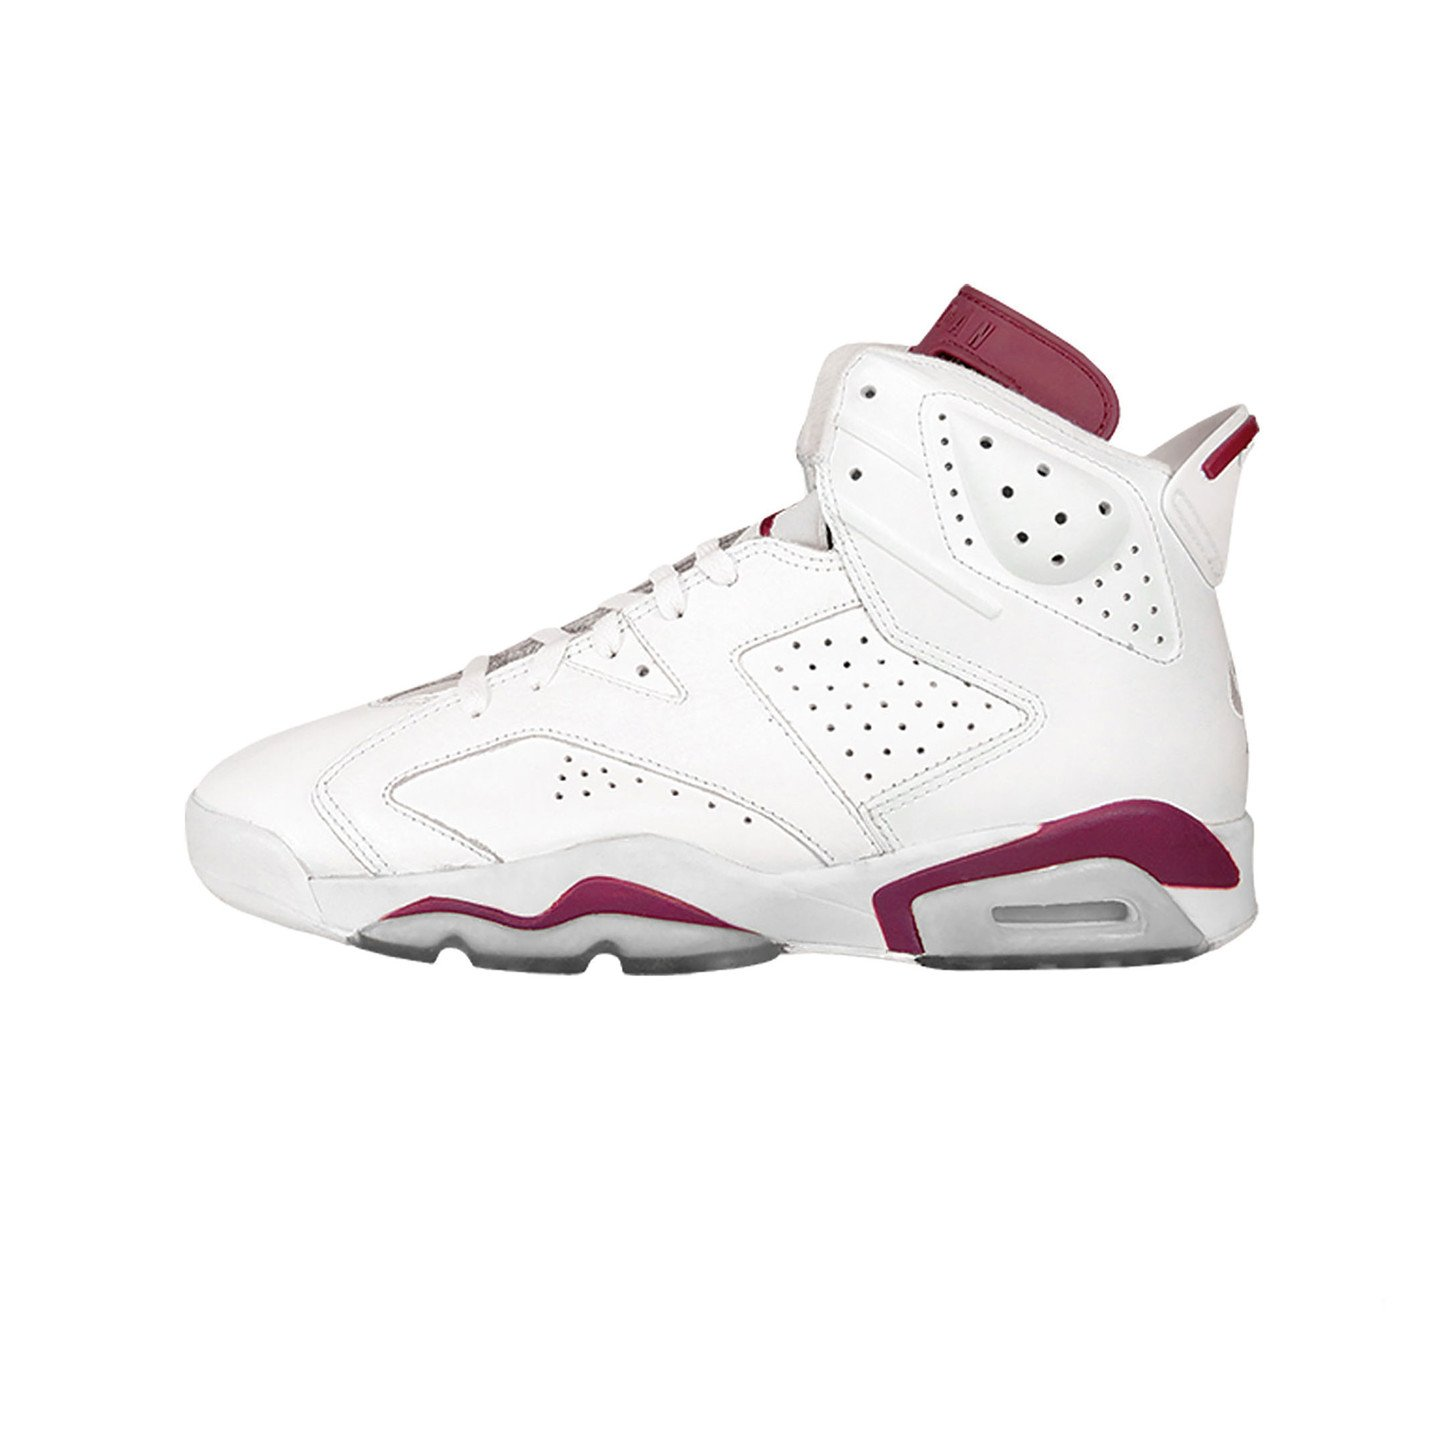 Jordan Air Jordan 6 Retro GS ´Maroon´ Off White / New Maroon 384665-116-39